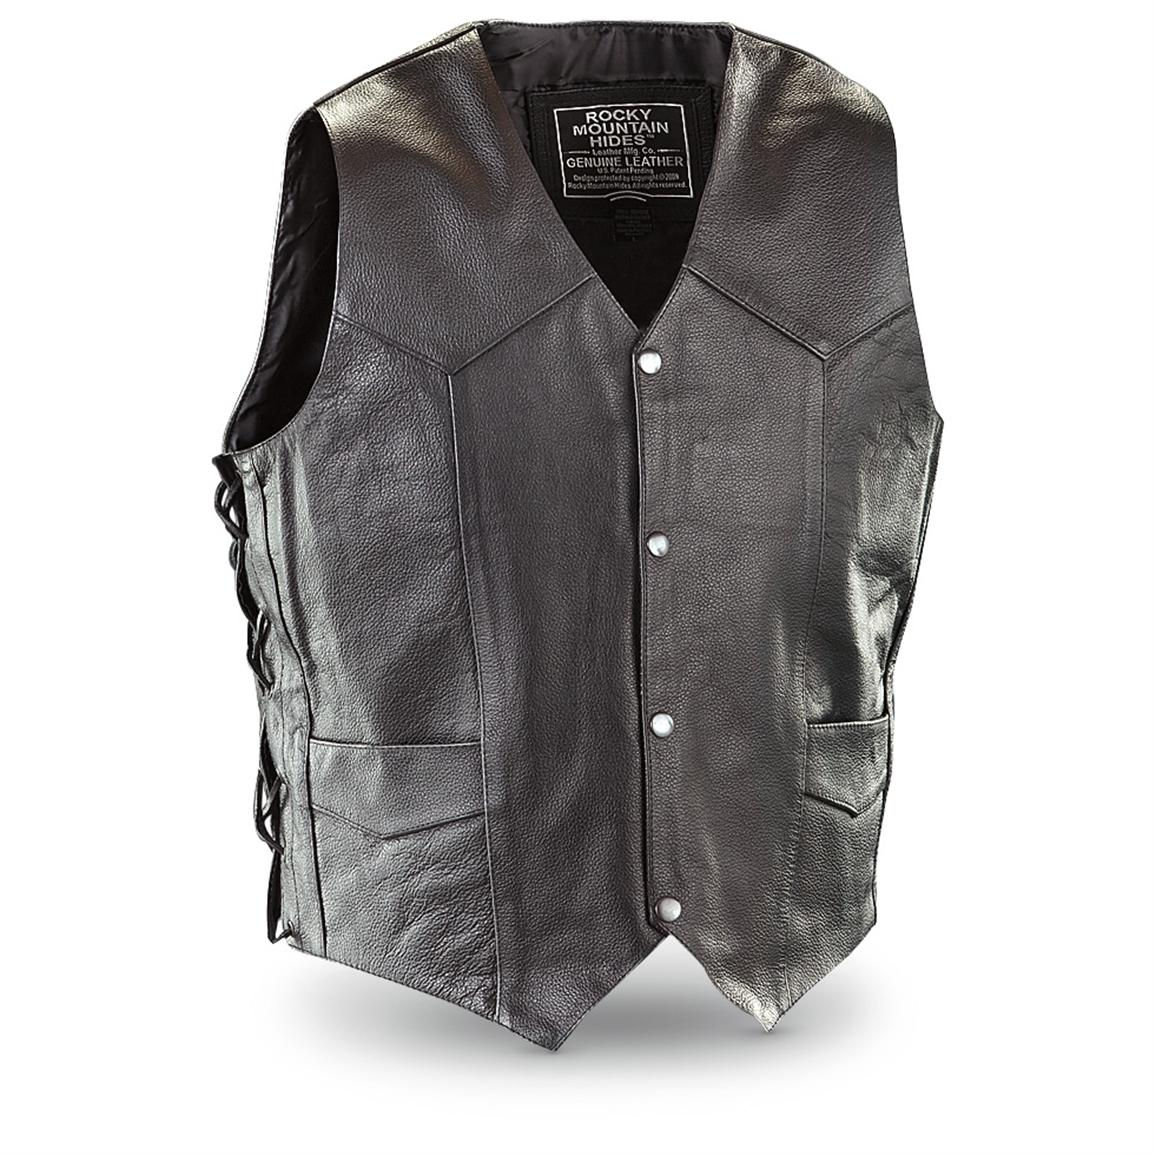 Rocky Mountain Hides™ Embroidered Leather Vest, Black, Front